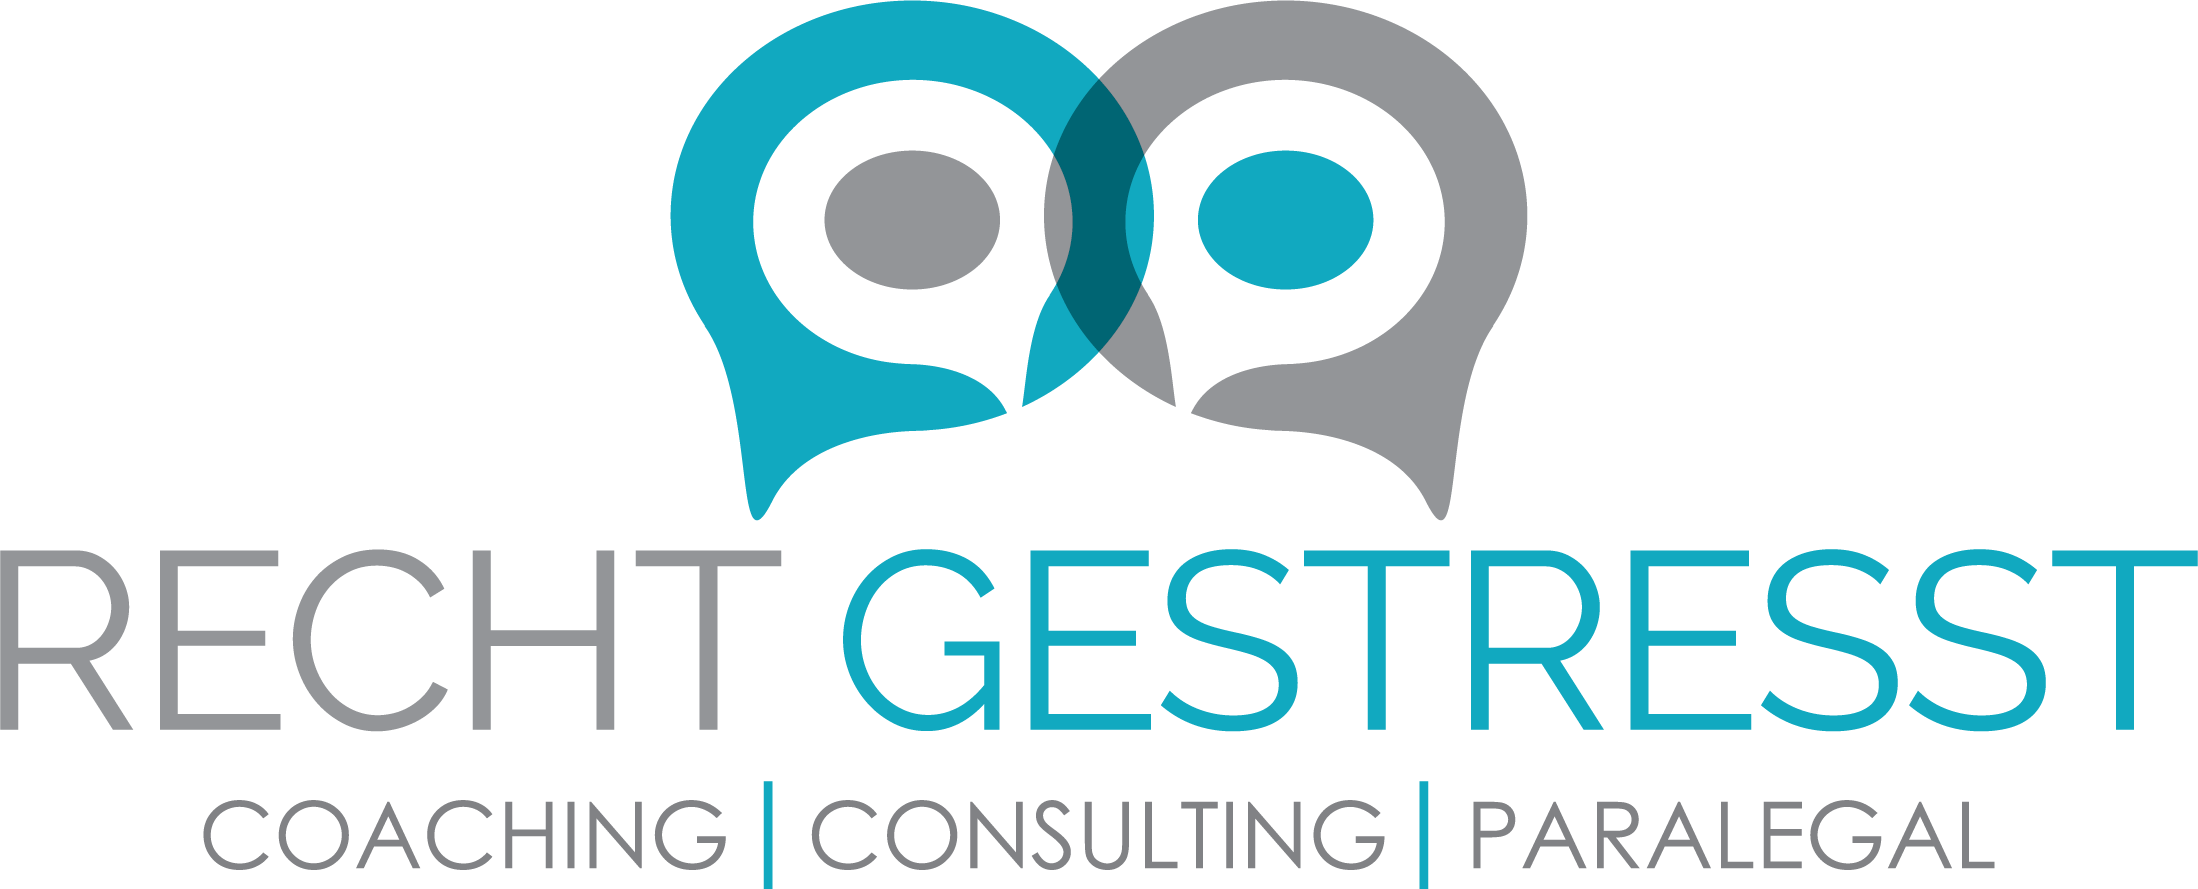 Recht Gestresst Coaching Consulting Paralegal Dassa Smith